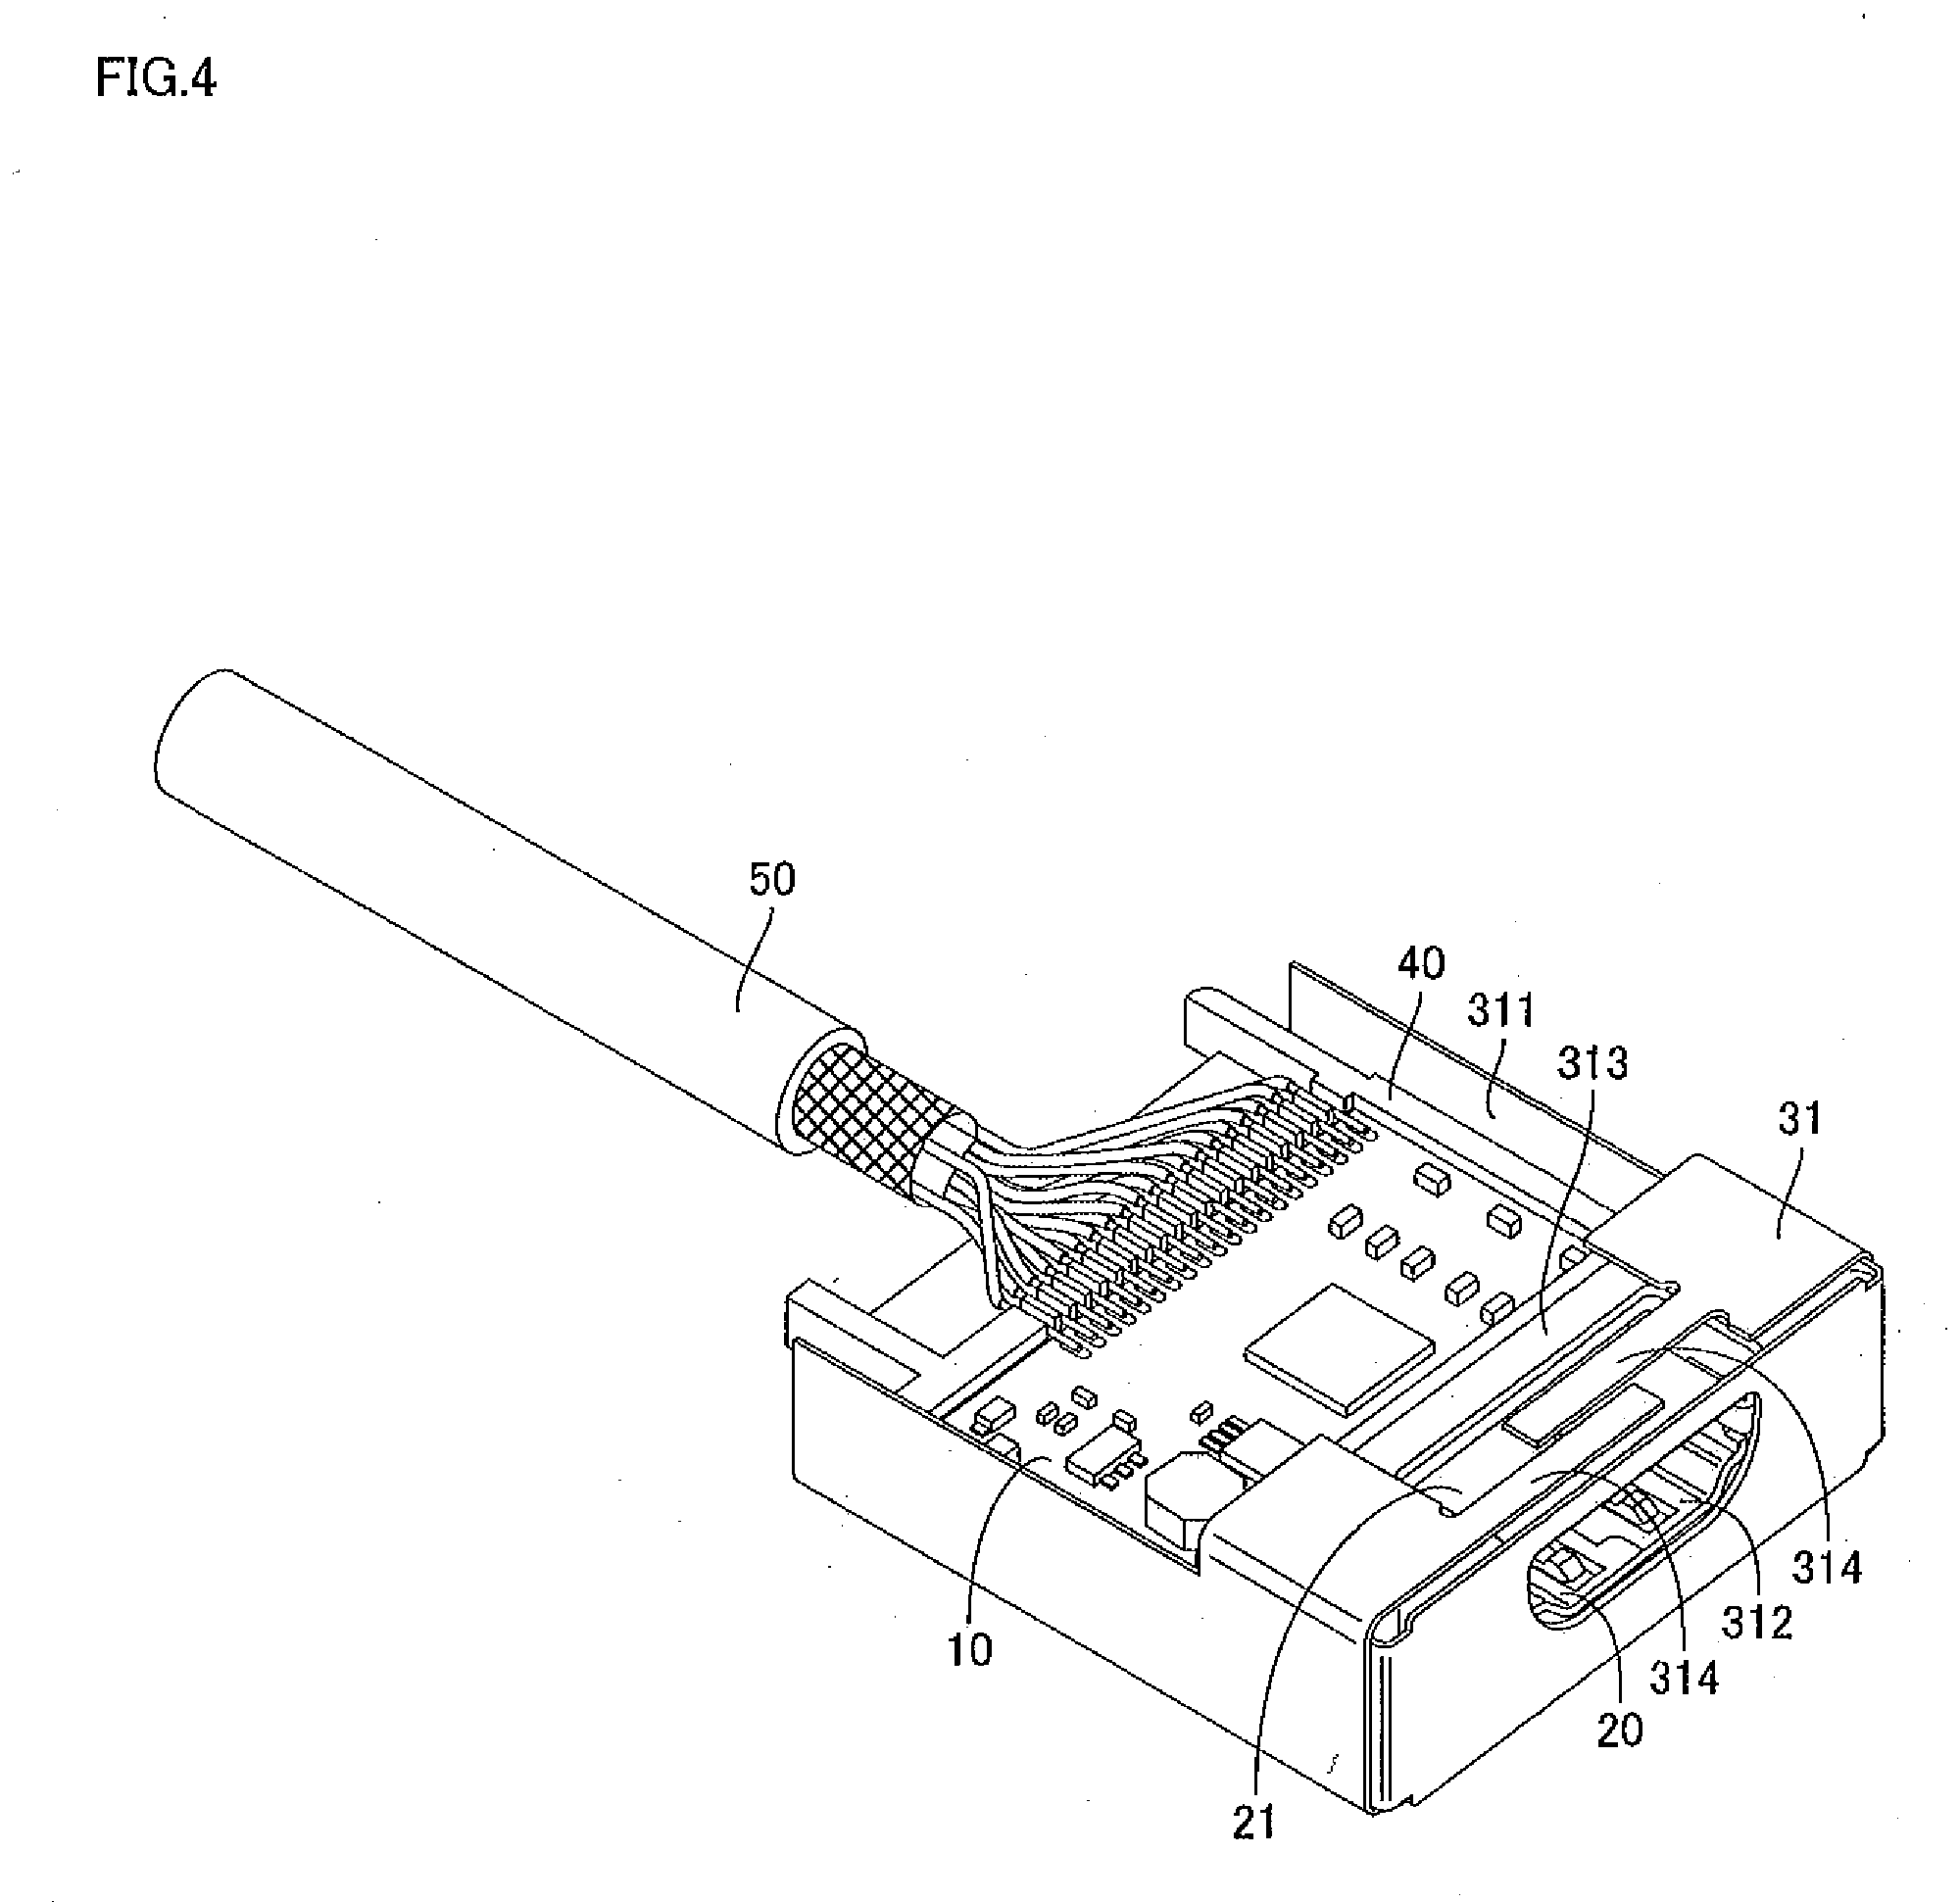 patent us20090120682 - printed circuit board assembly